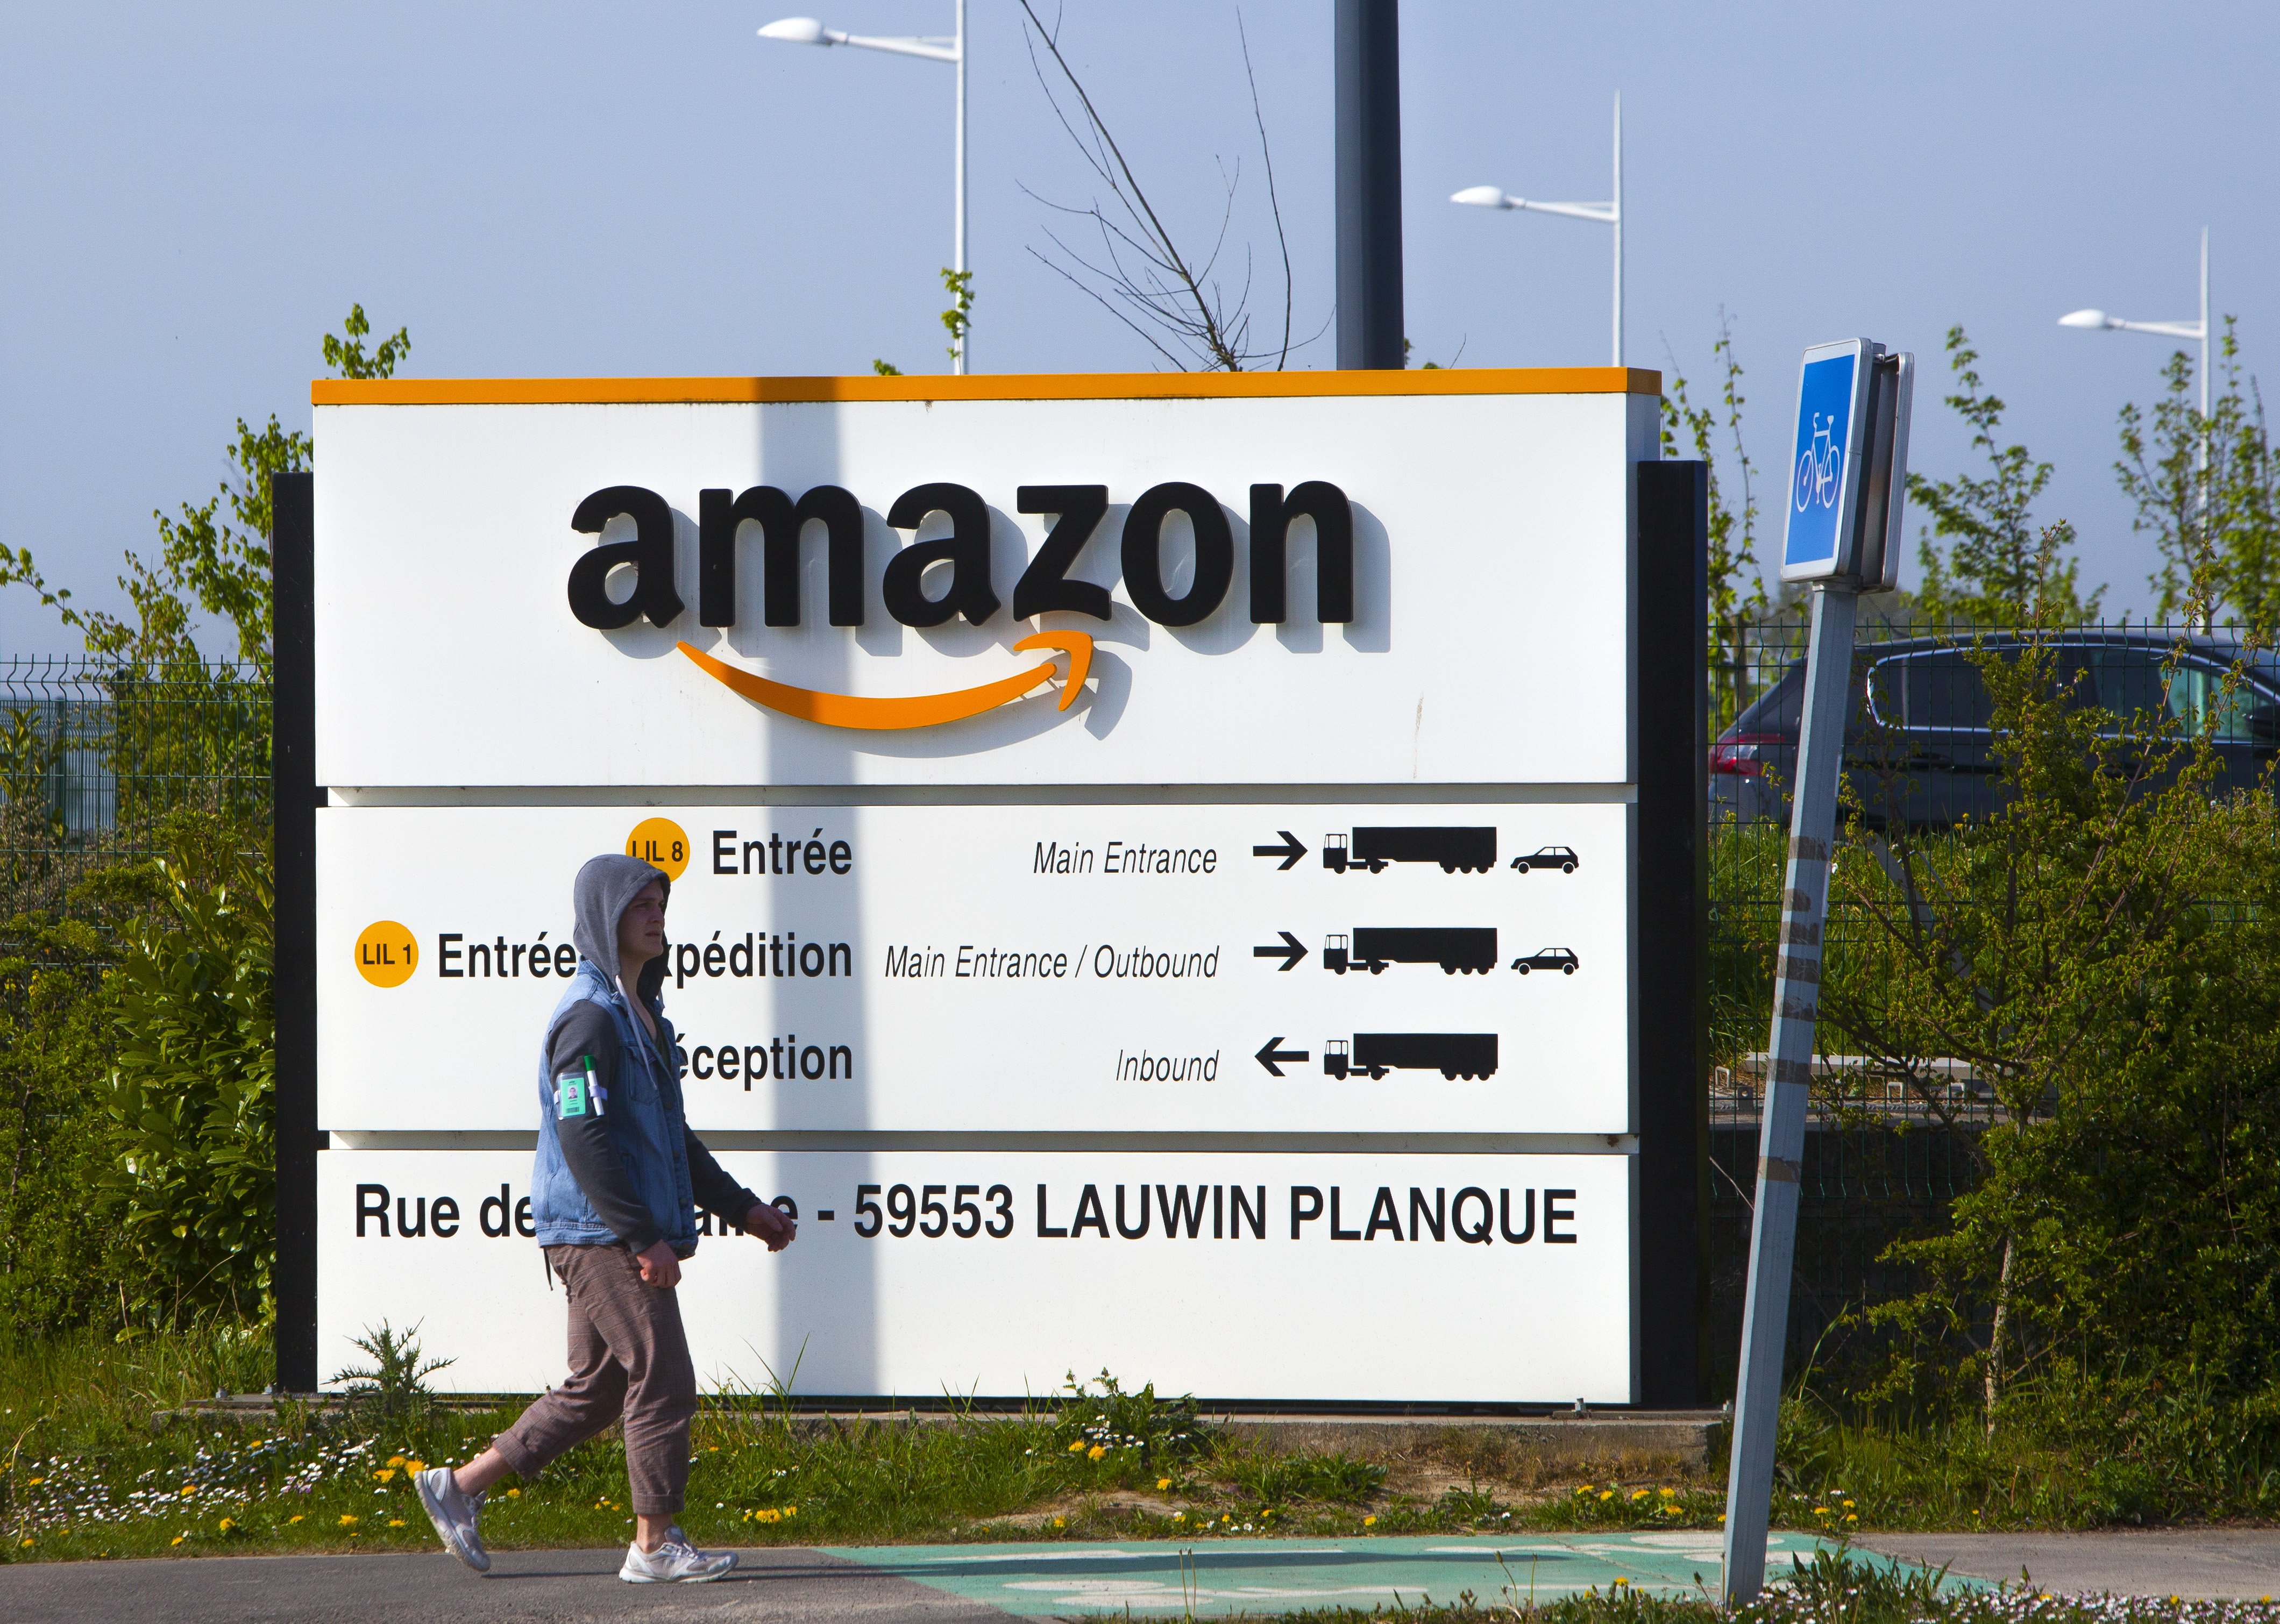 Amazon to develop COVID-19 test in bid to kickstart struggling economy